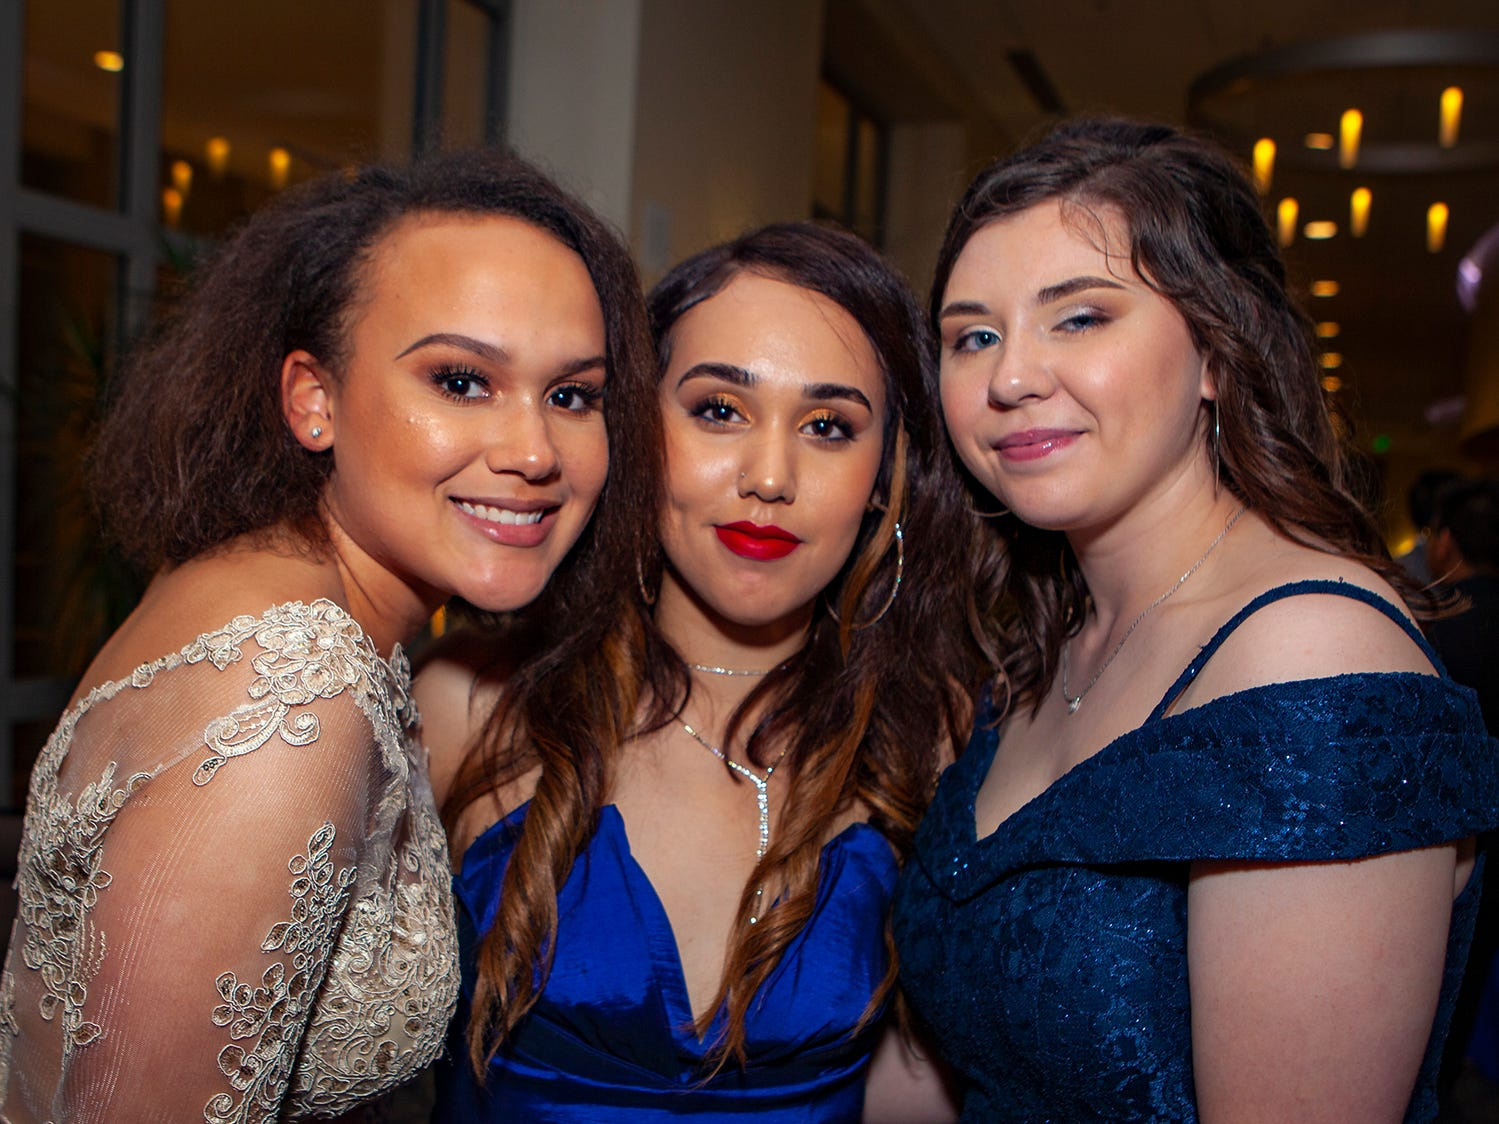 La Vergne High's prom, held Saturday, May 4, 2019 at MTSU's Student Union Building.